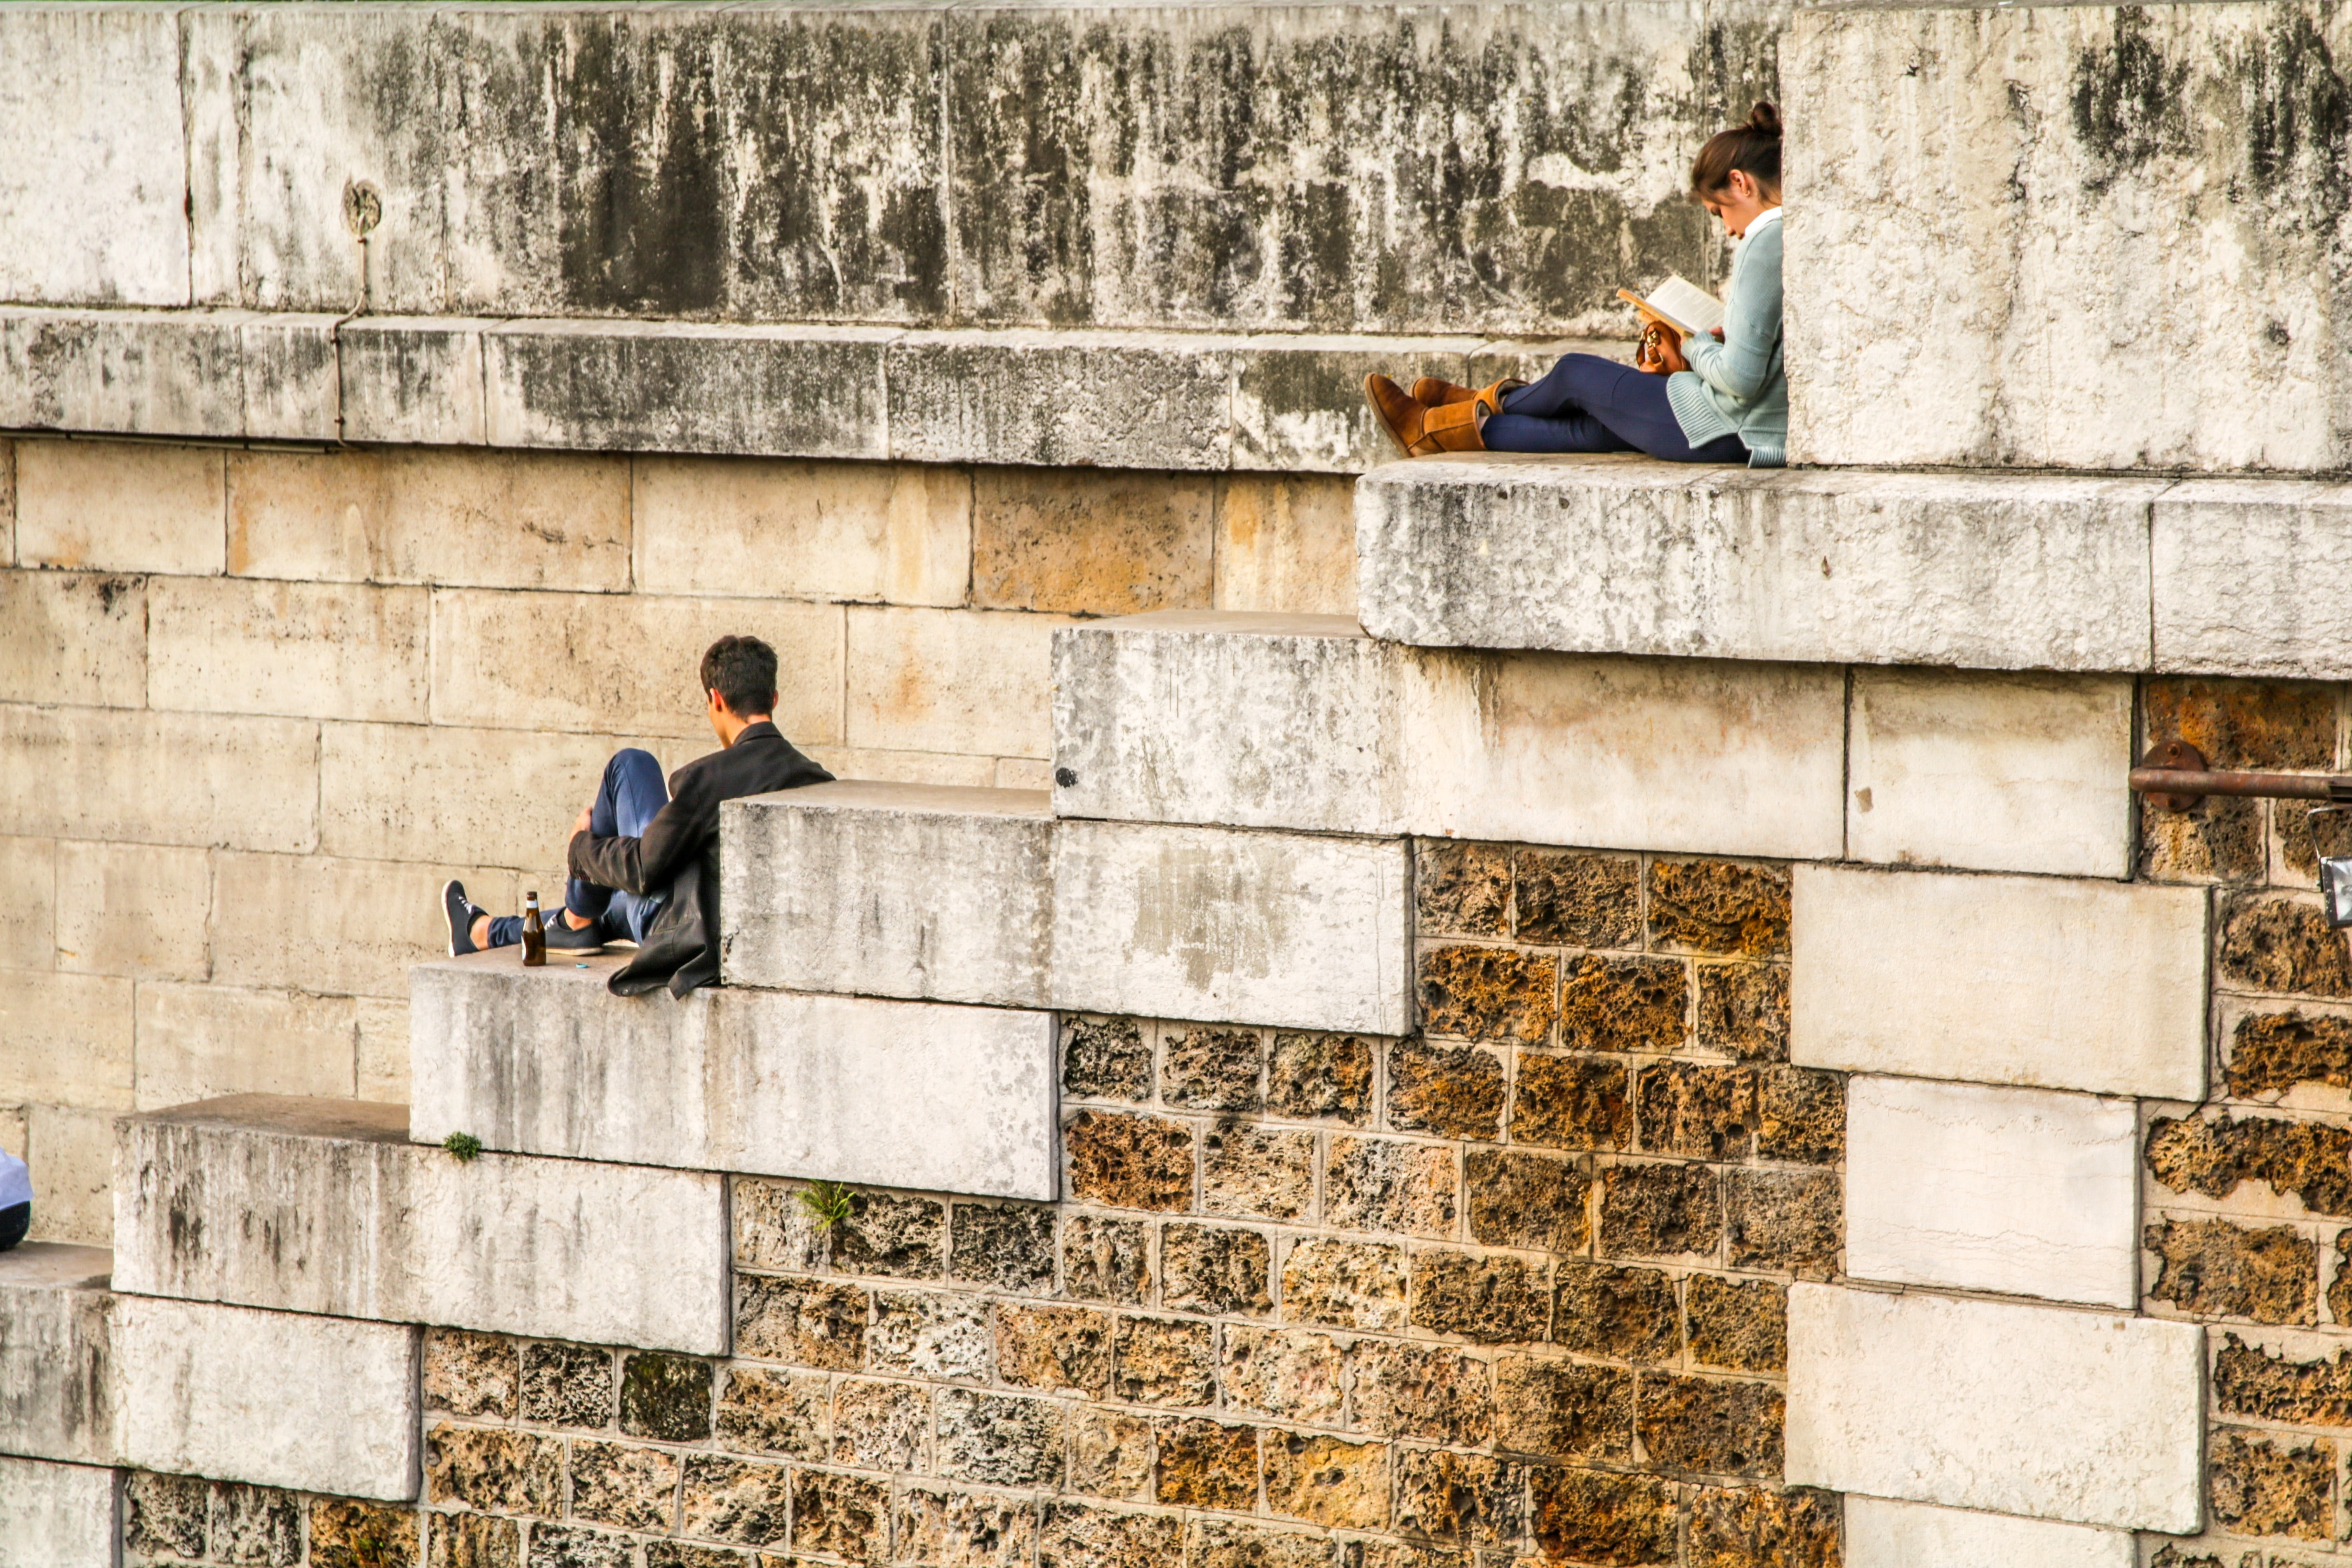 A woman reading a book on brick an stone stairs while a man drinks a beverage.